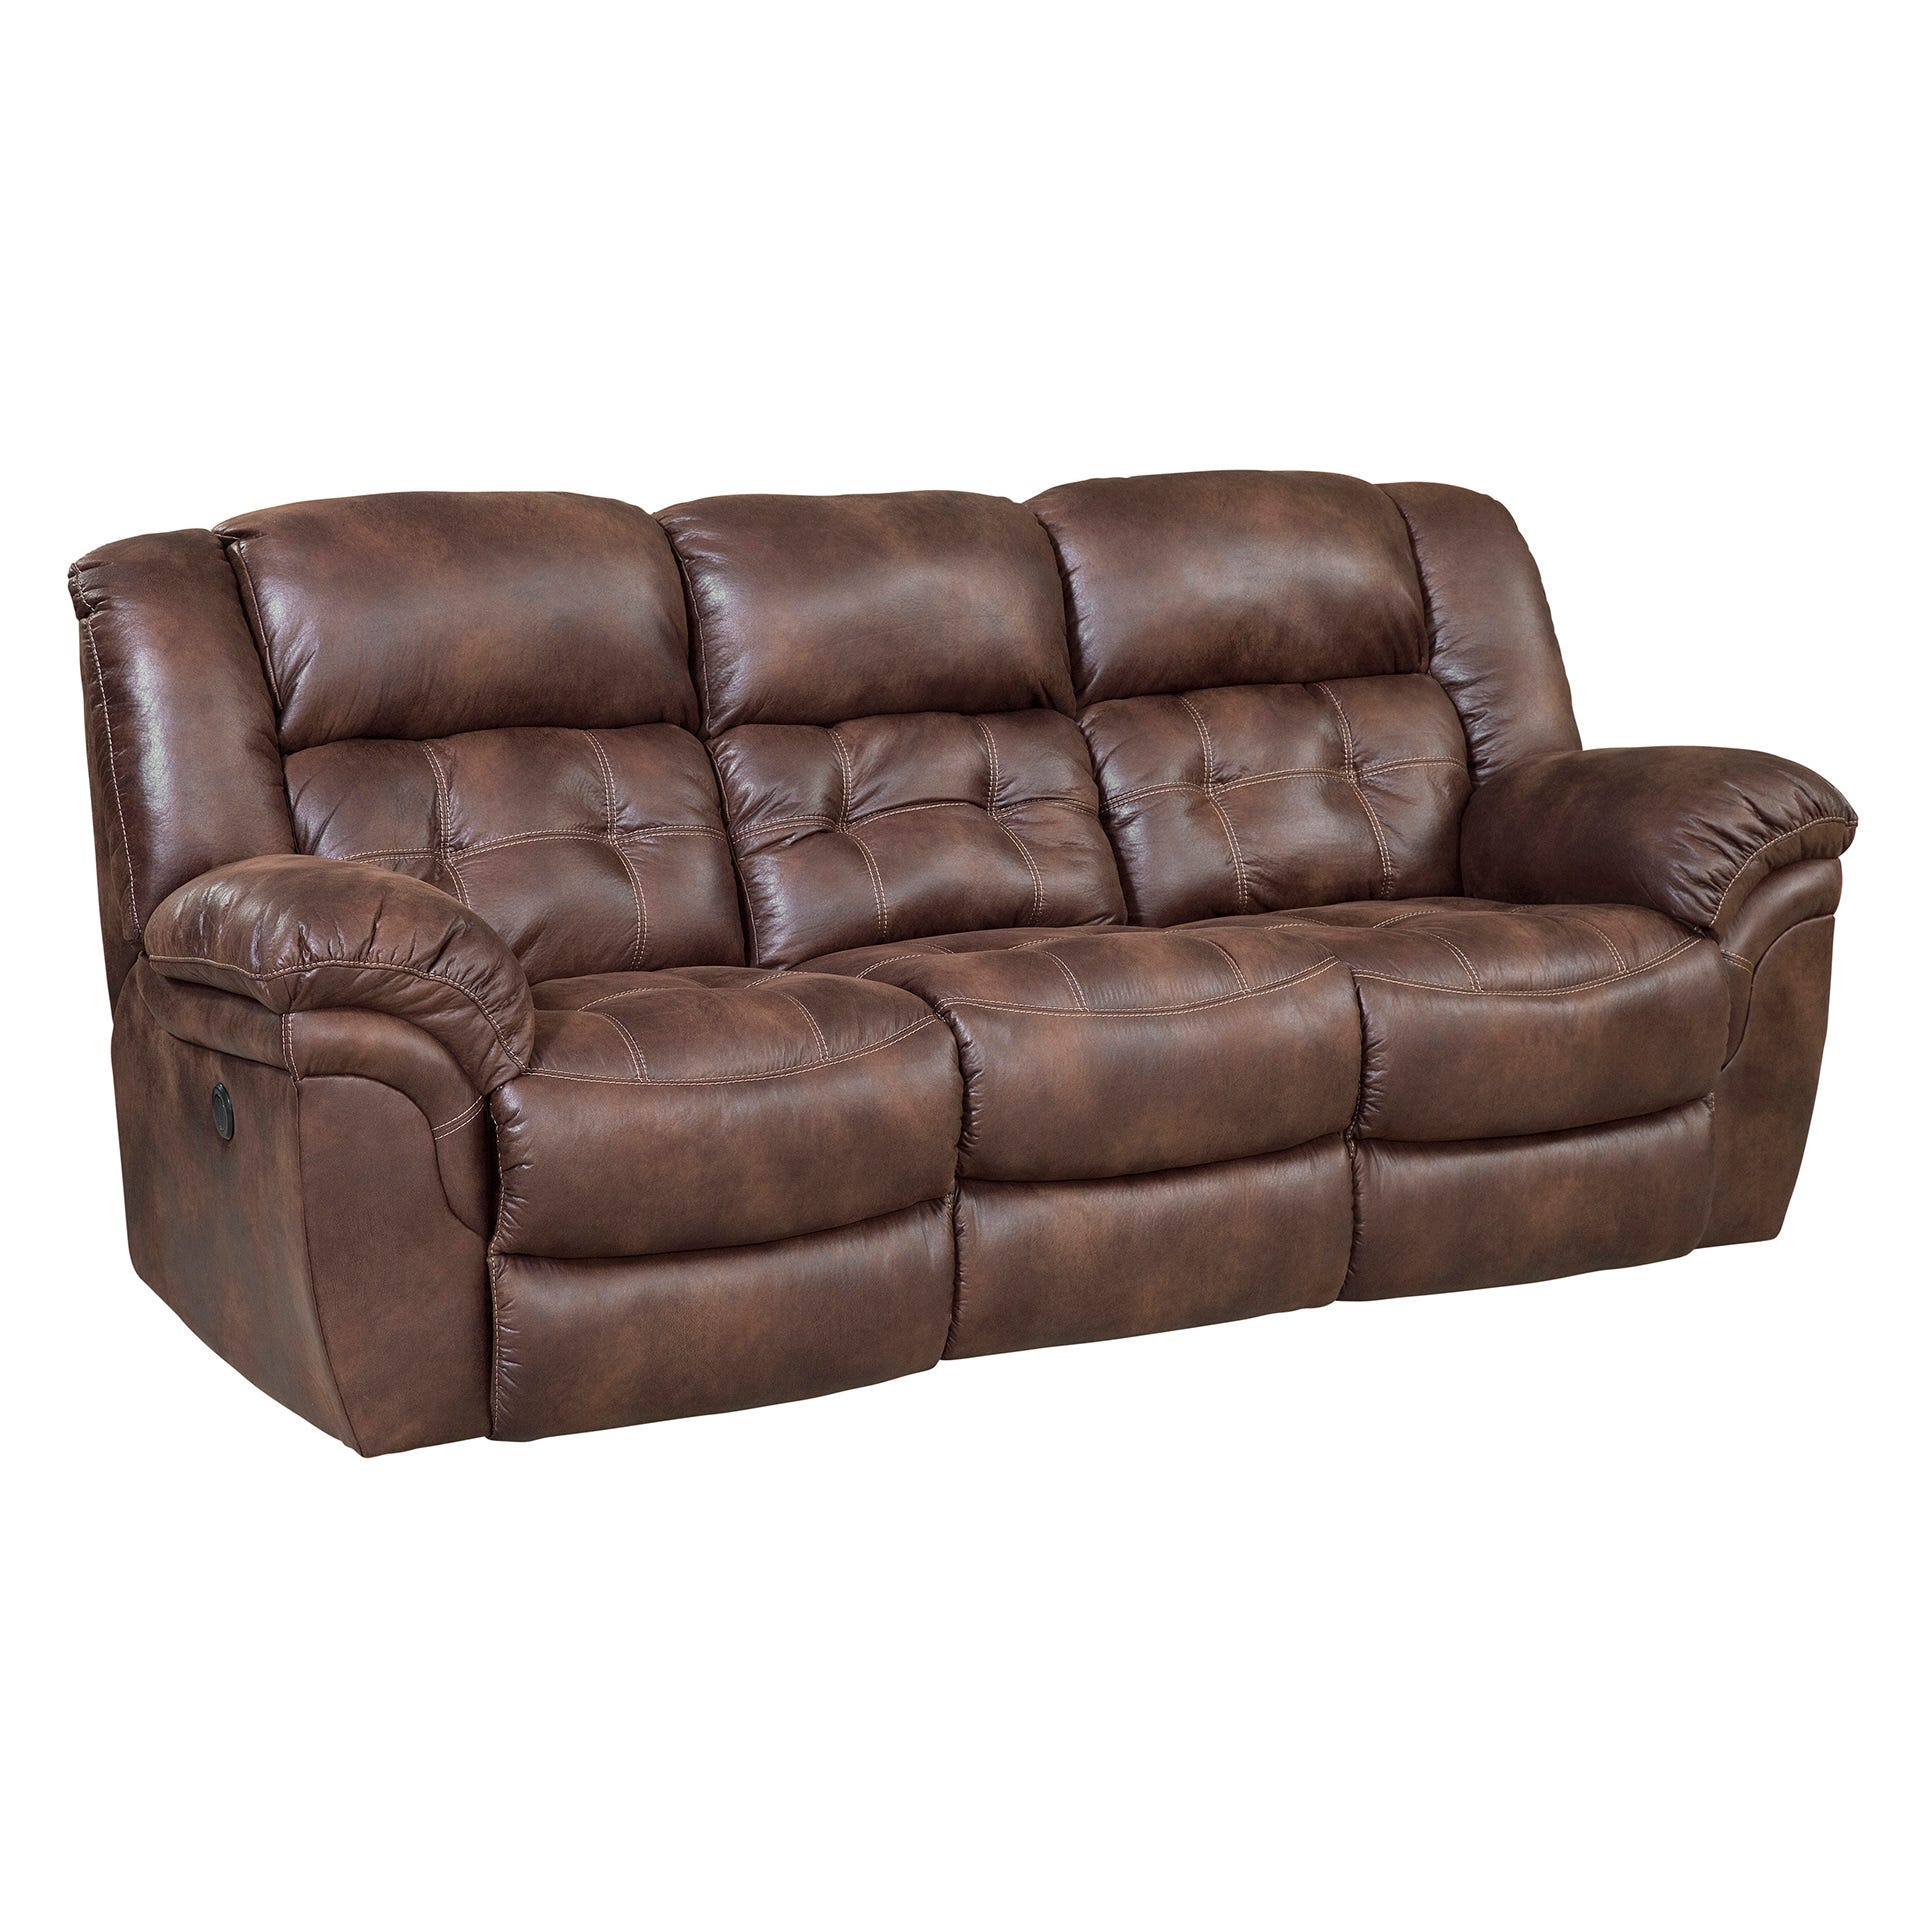 Homestretch Frontier Reclining Sofa In Espresso